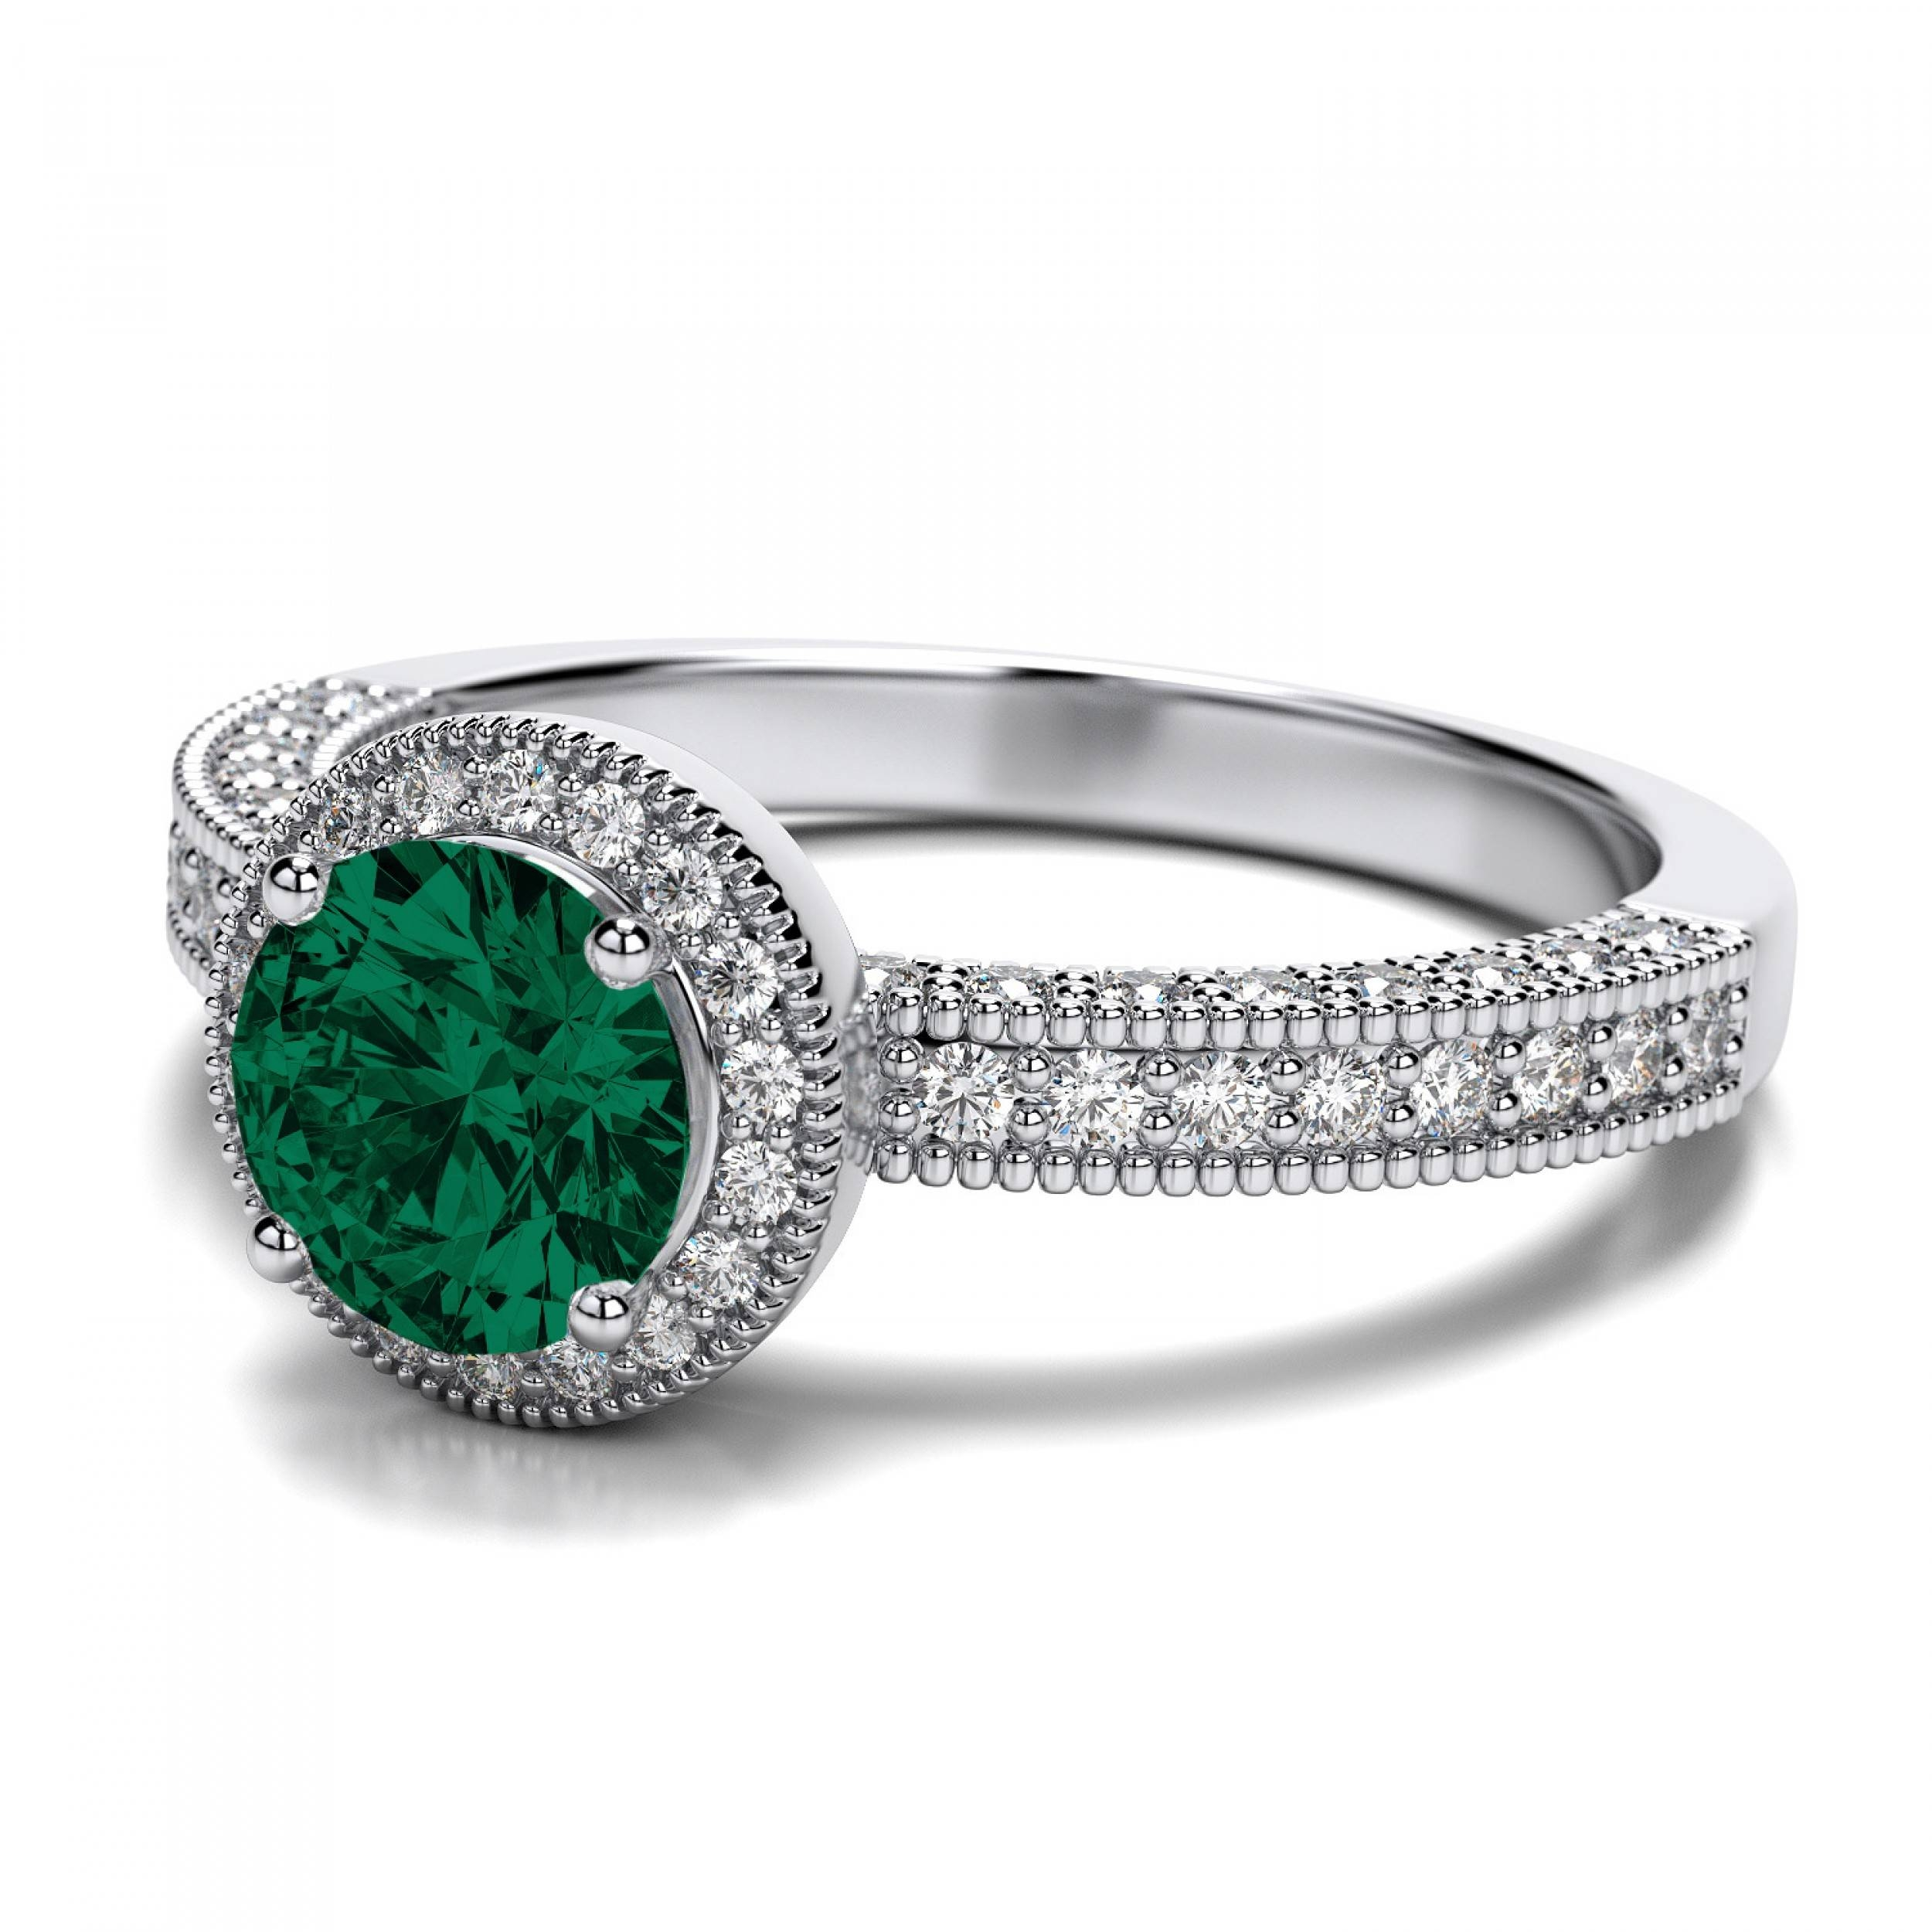 Victorian Vintage Round Emerald Engagement Ring In 14K White Gold Intended For Emerald Engagement Rings White Gold (Gallery 7 of 15)